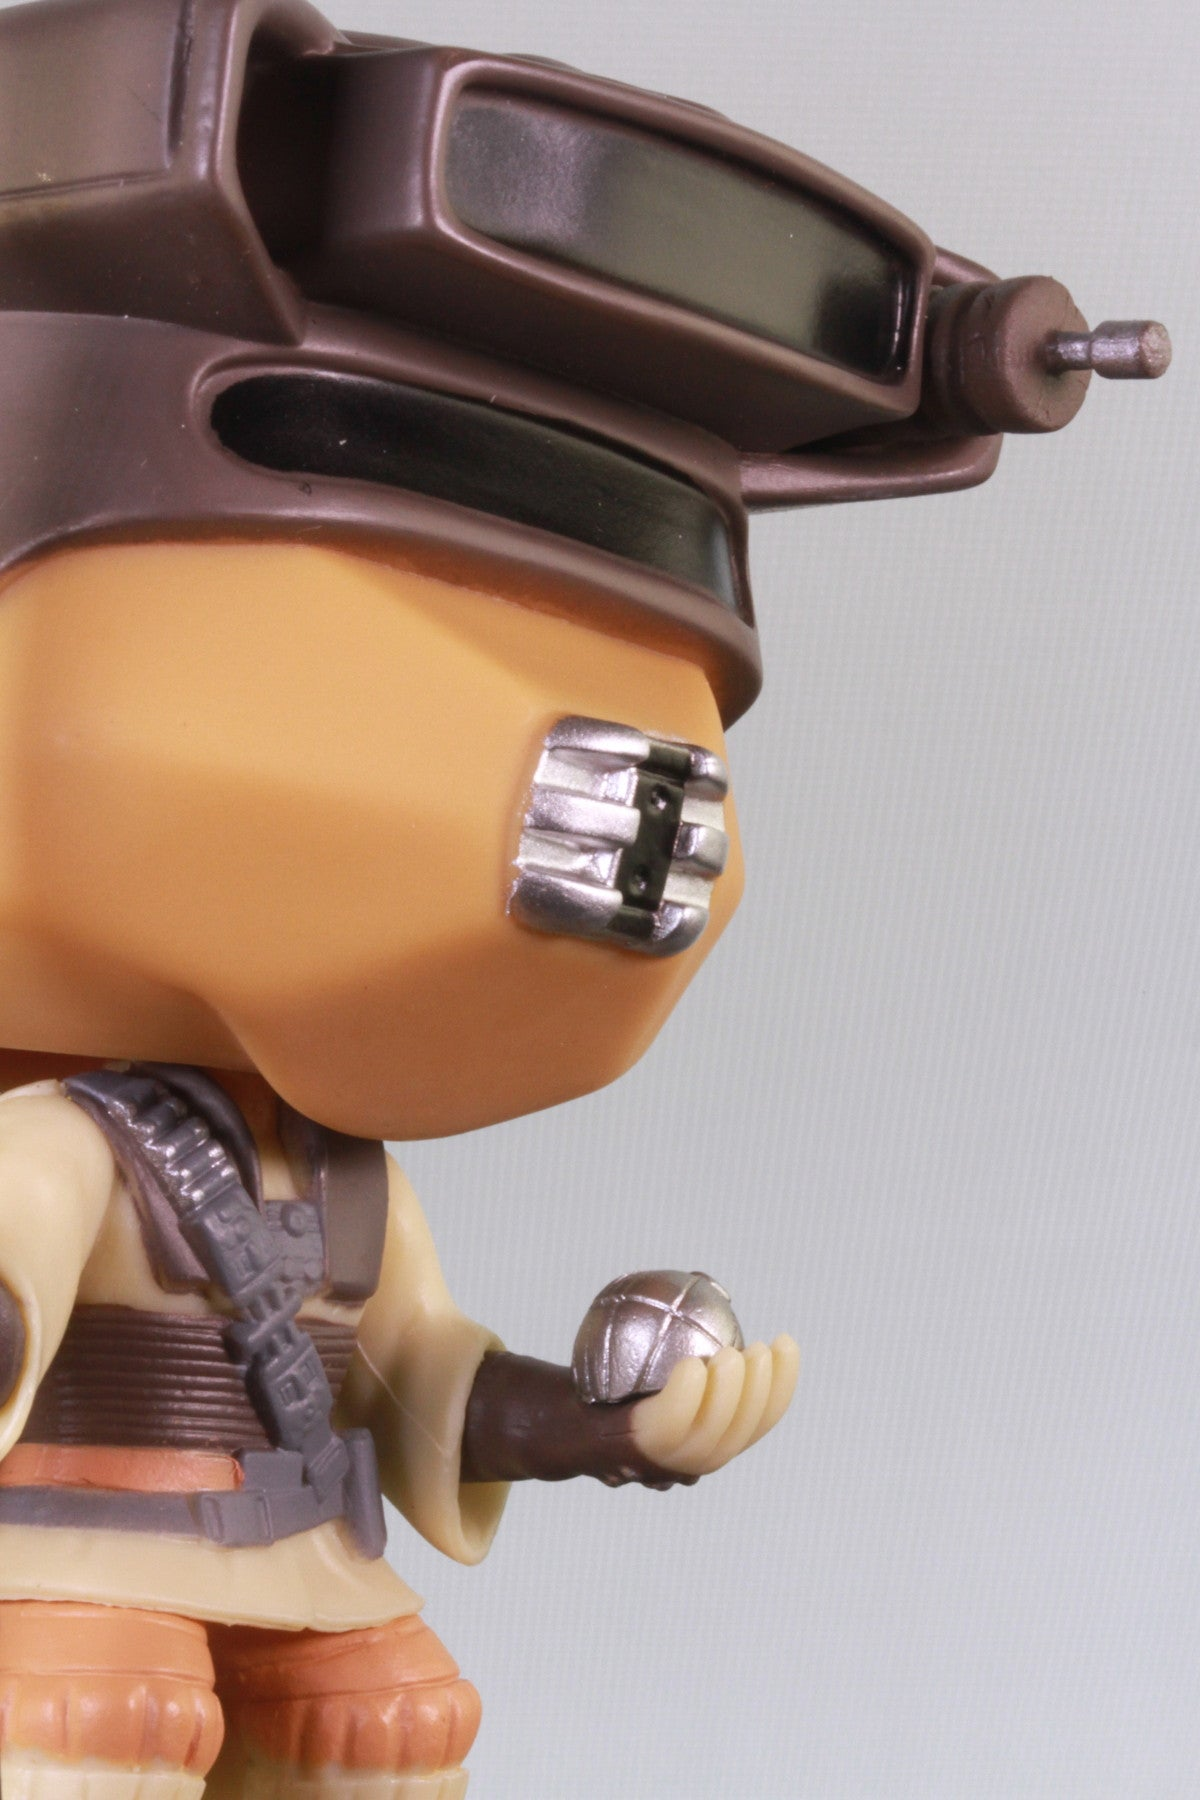 Funko Pop Star Wars, Princess Leia Boushh #50